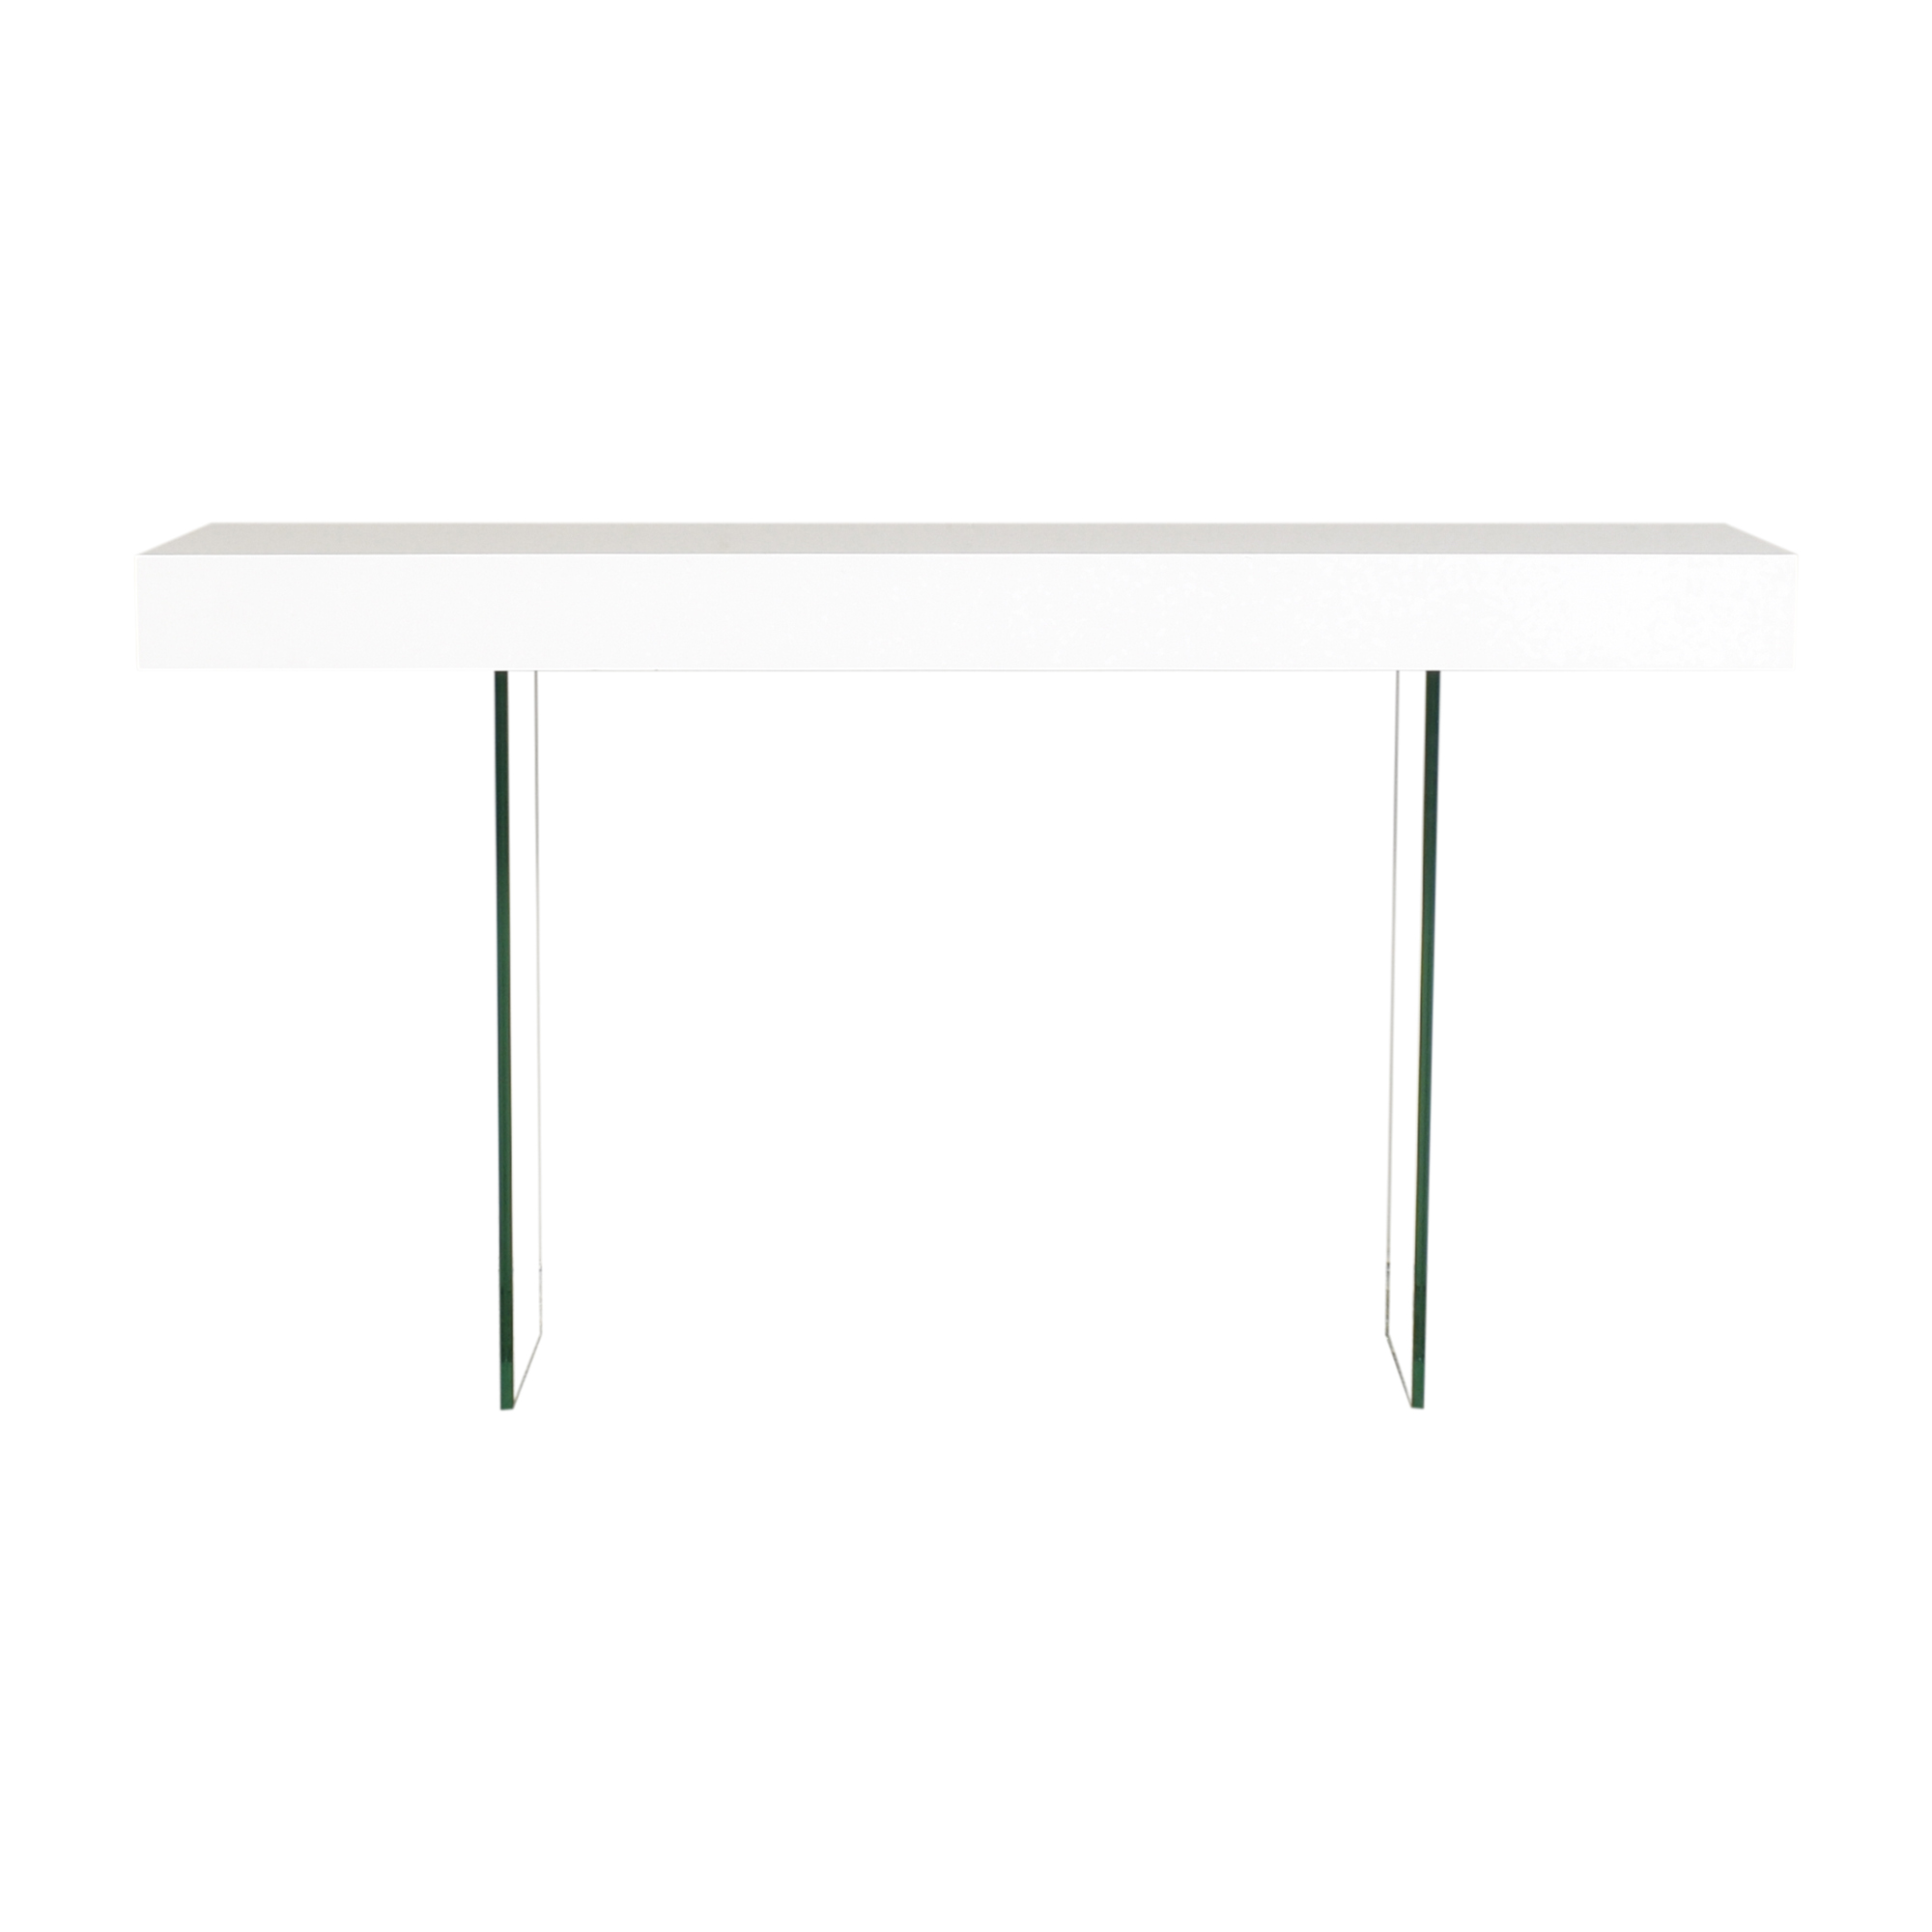 Modloft Modloft Transparent Leg Accent Table for sale